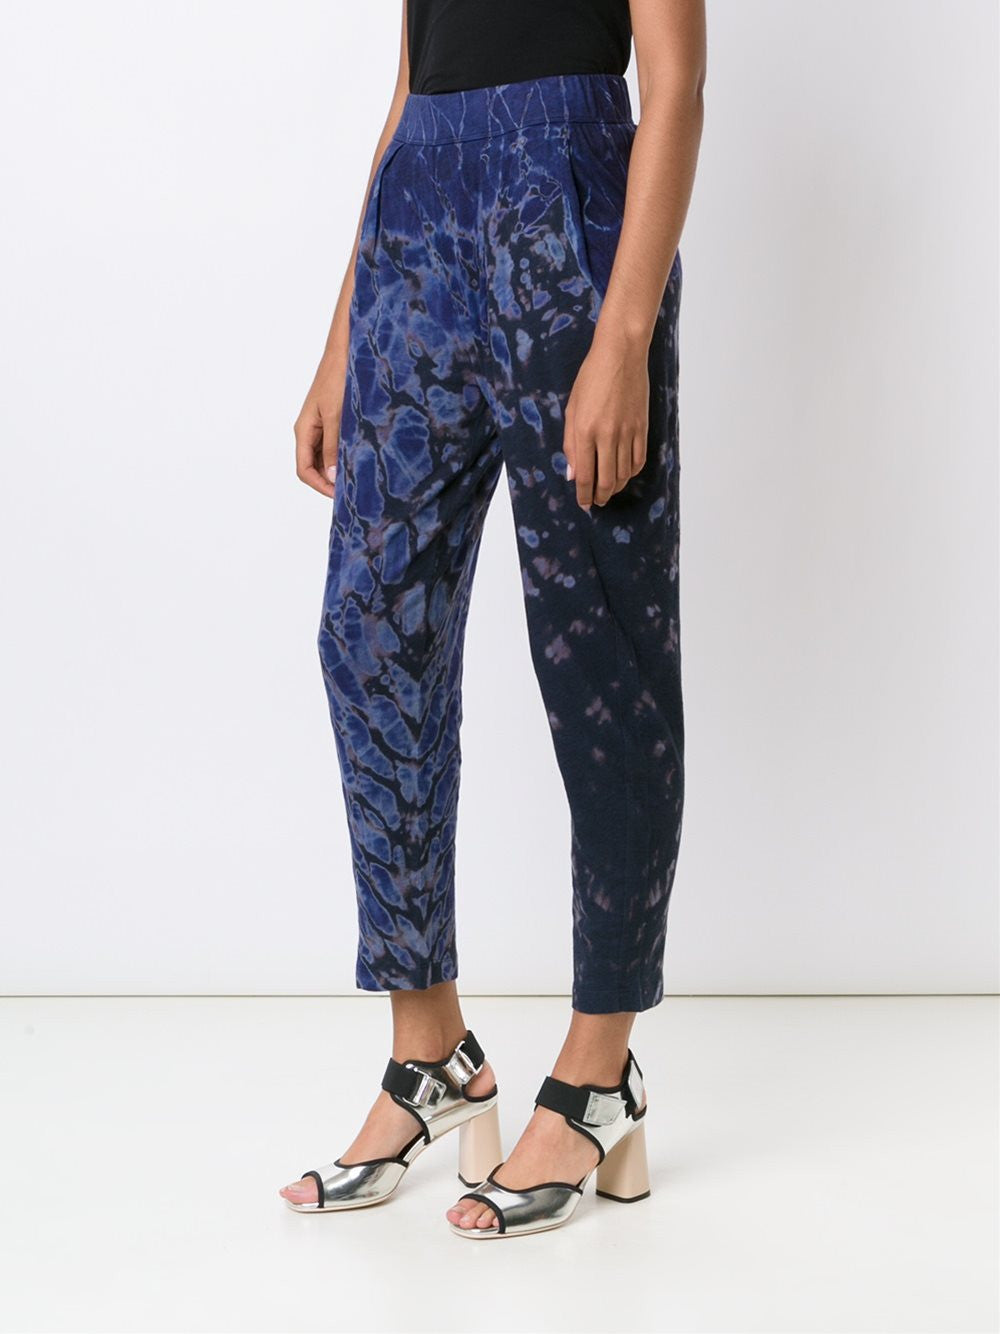 Relaxed Tie-Dye Pant | Z65-1534TD